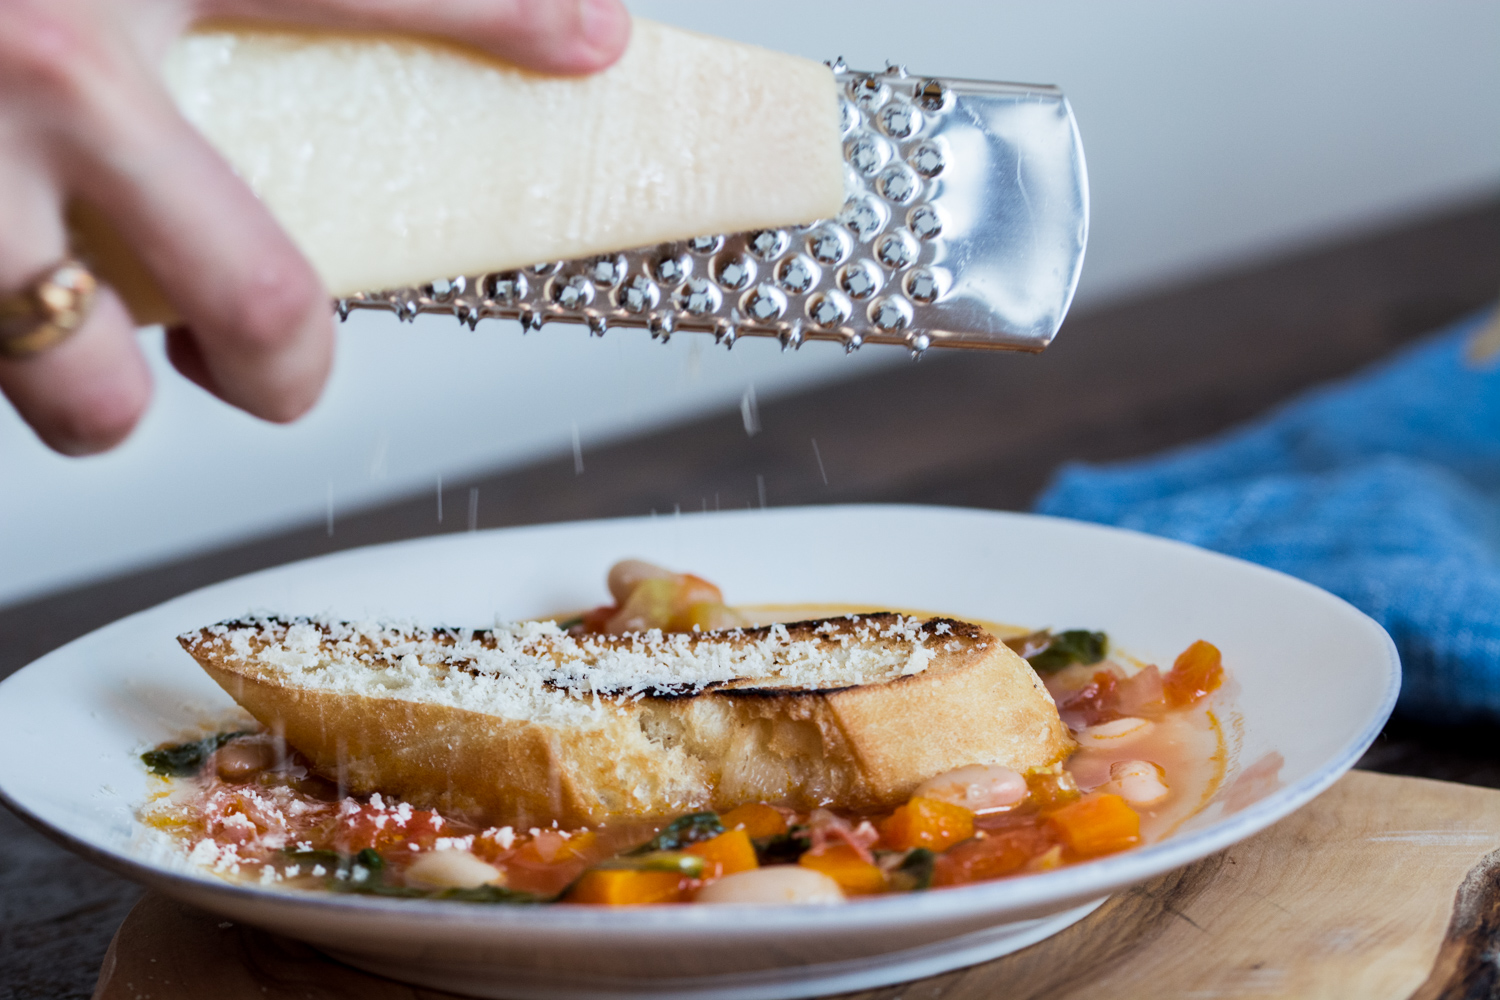 grating-parmesan-cheese